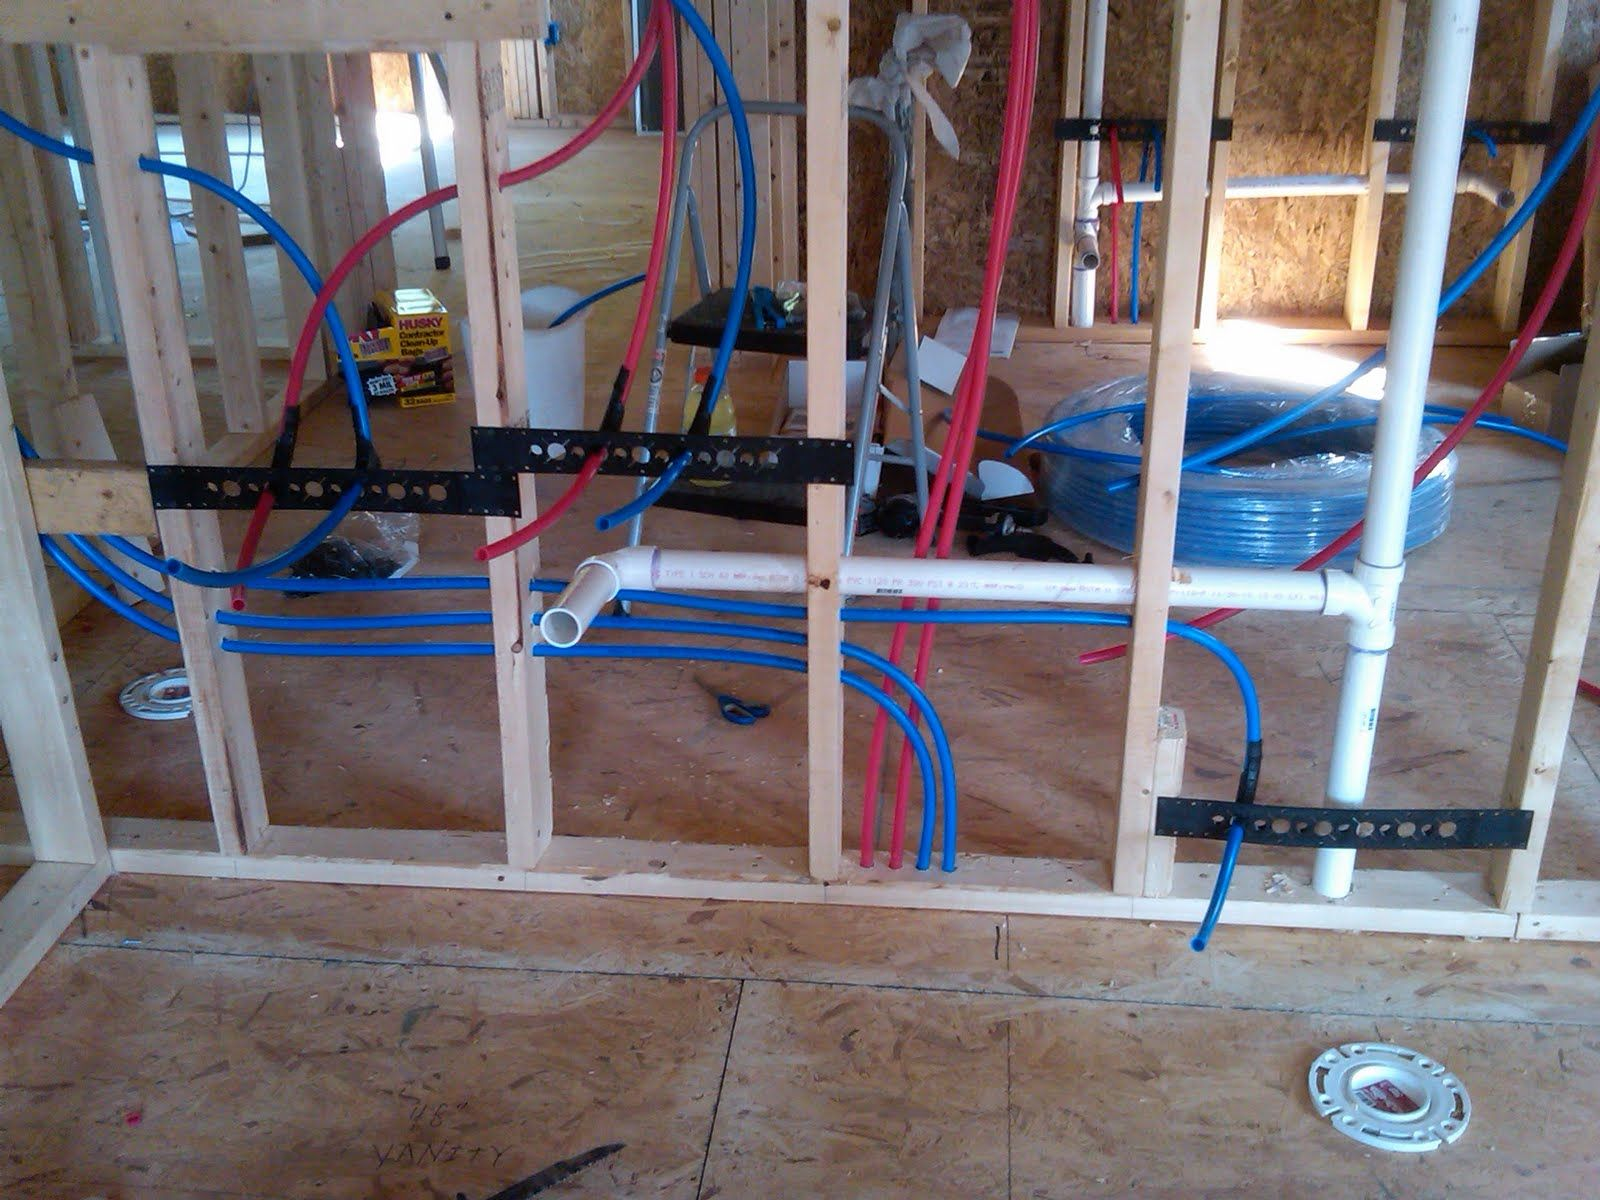 Plumbing pex water lines install for toilet sinks for New home plumbing